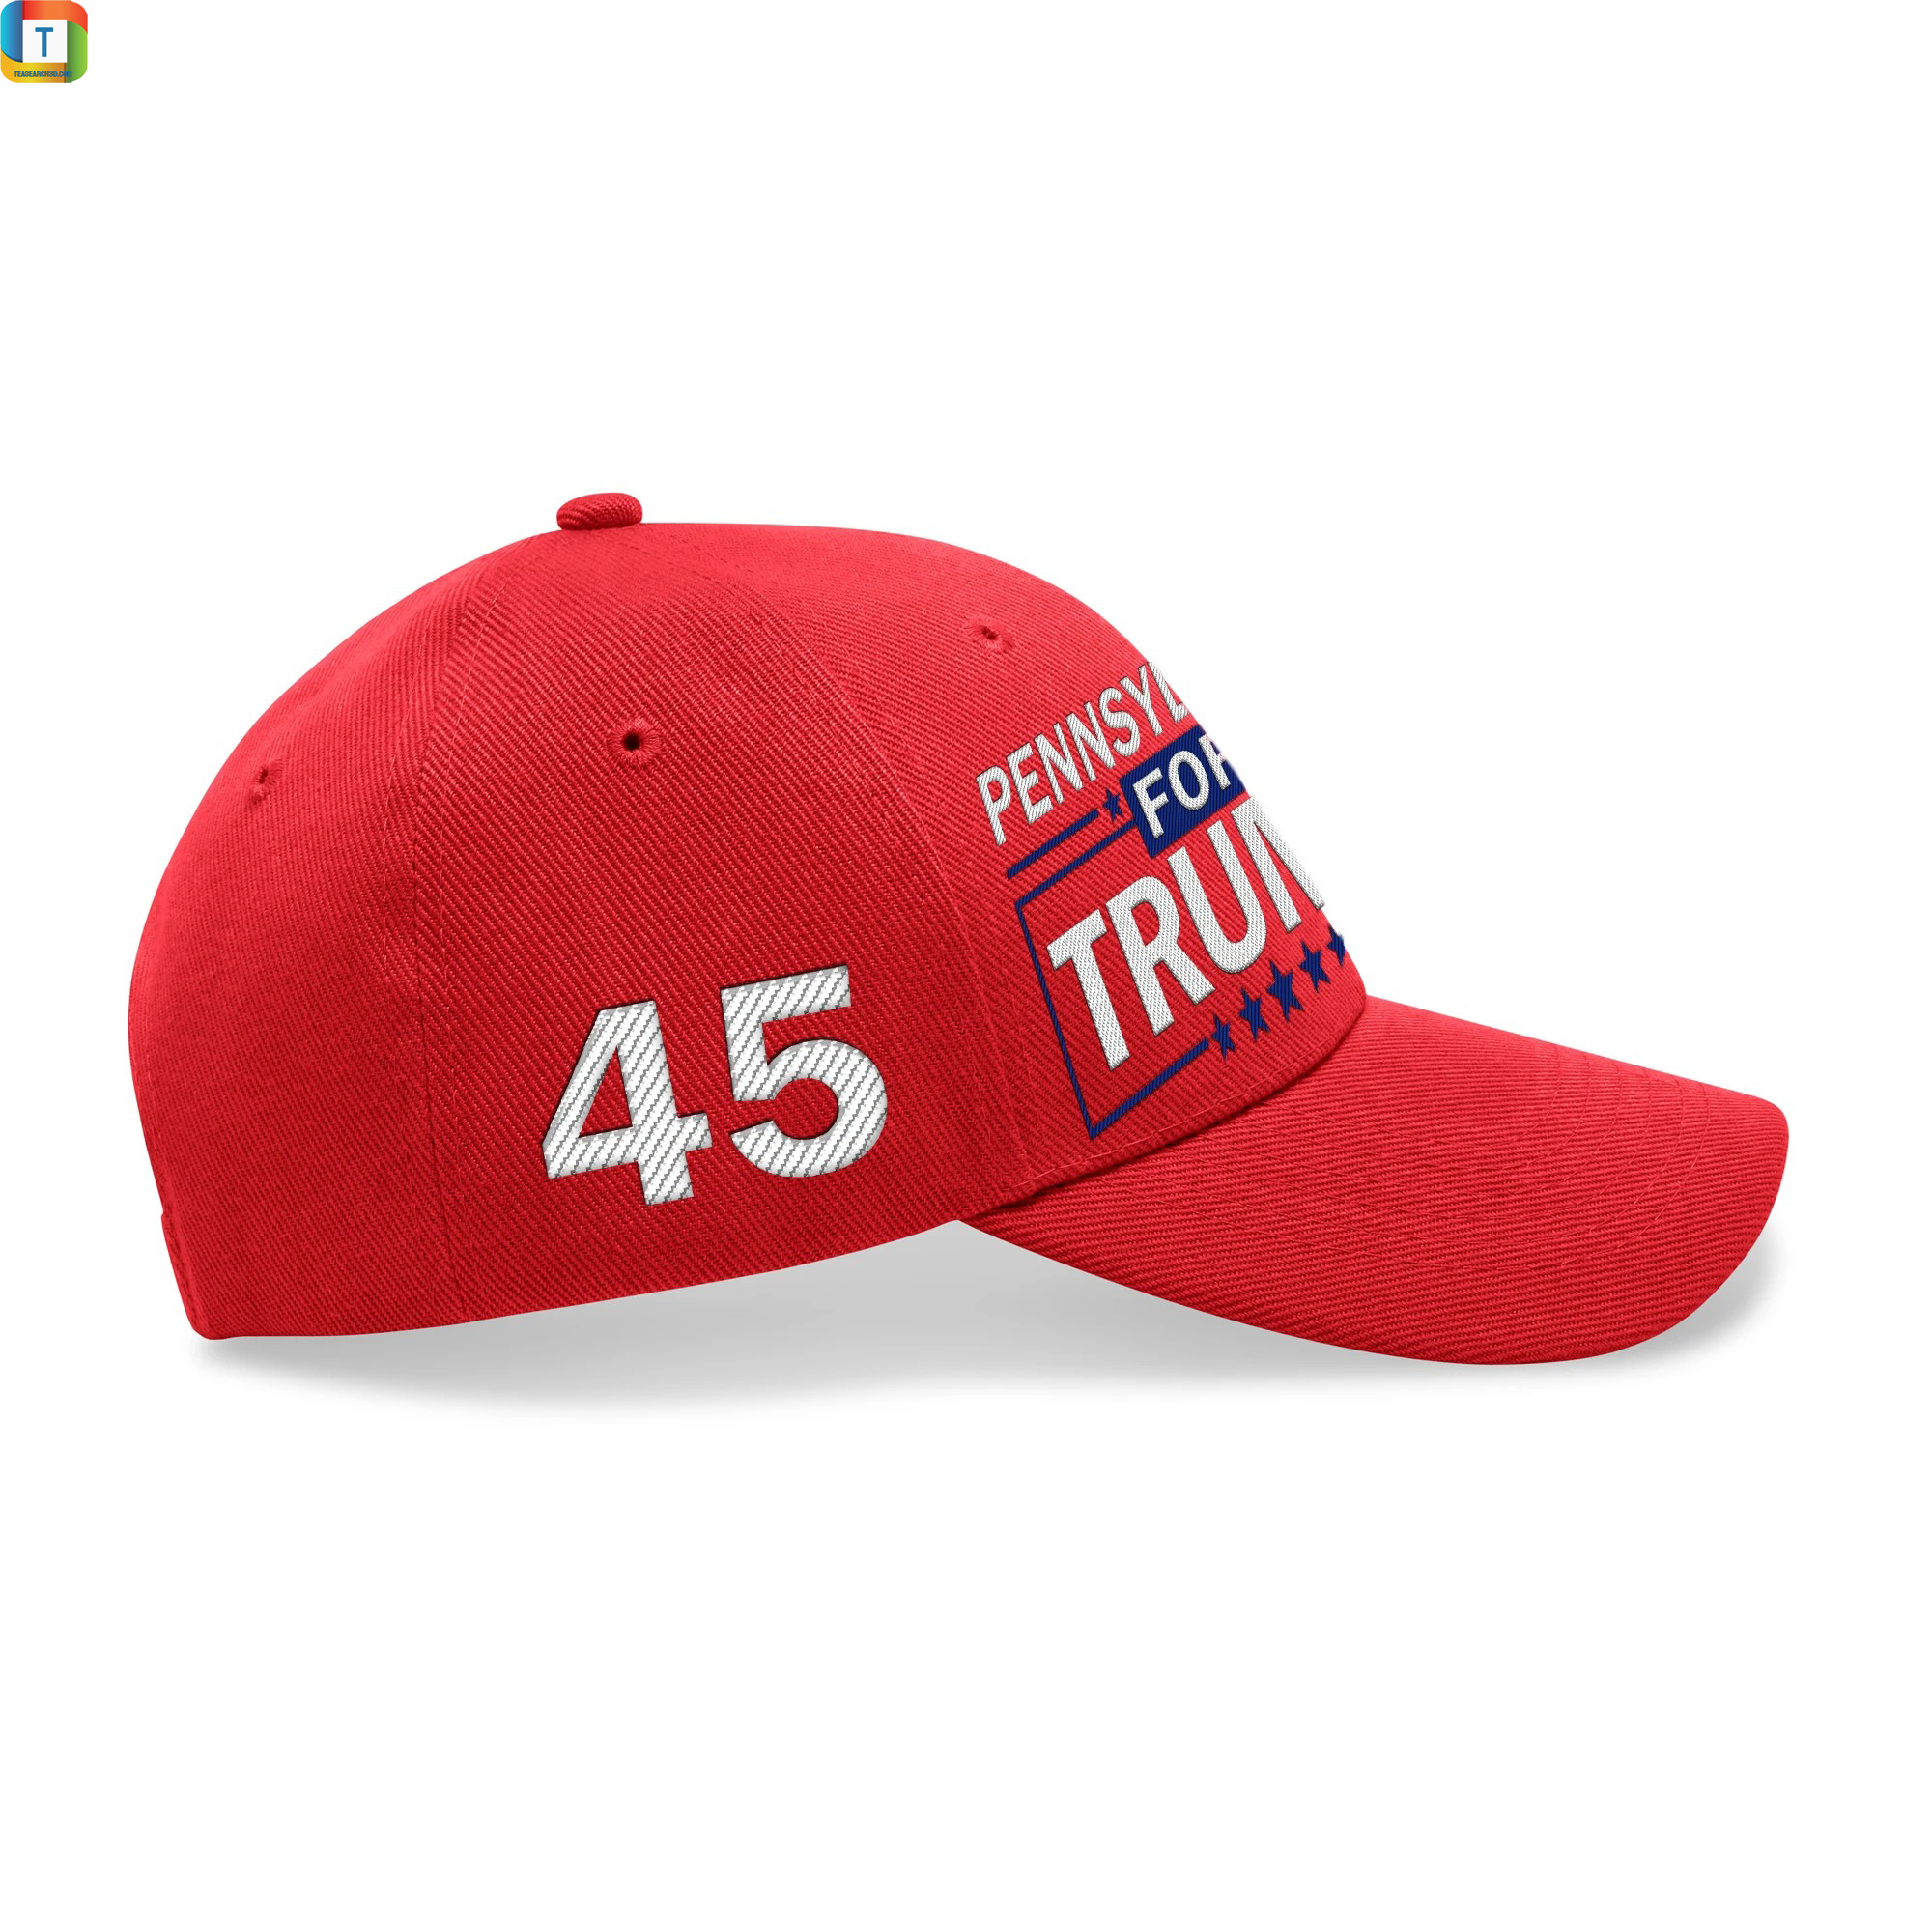 Pennsylvania For Trump Embroidered Hat 3